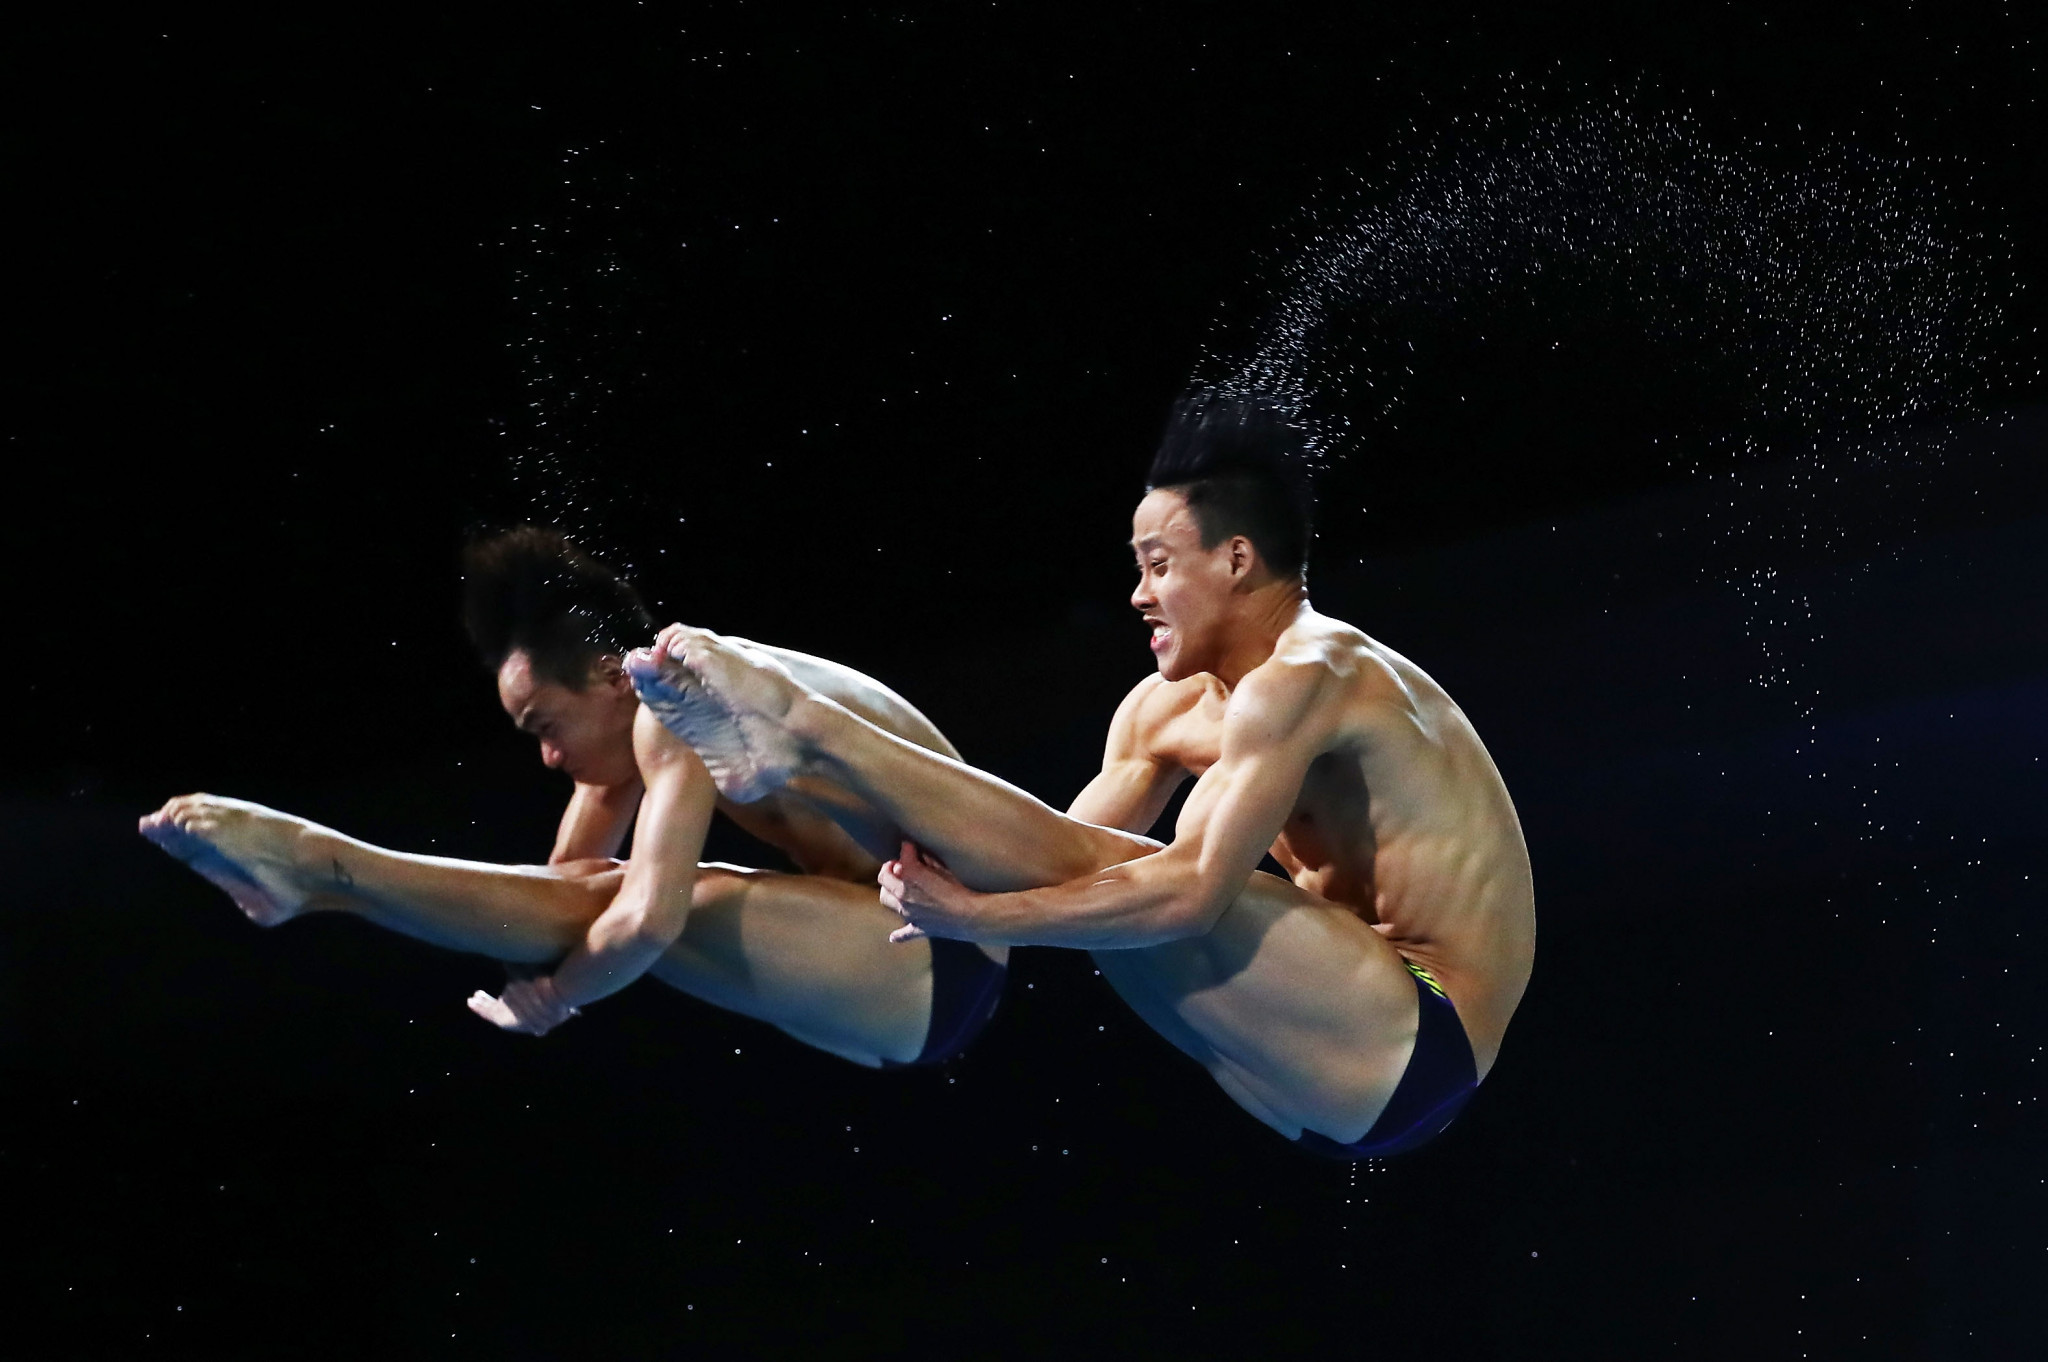 Ooi Tze Liang and his partner Syafiq Puteh, not pictured, won gold in the men's synchronised 3m springboard event ©Getty Images